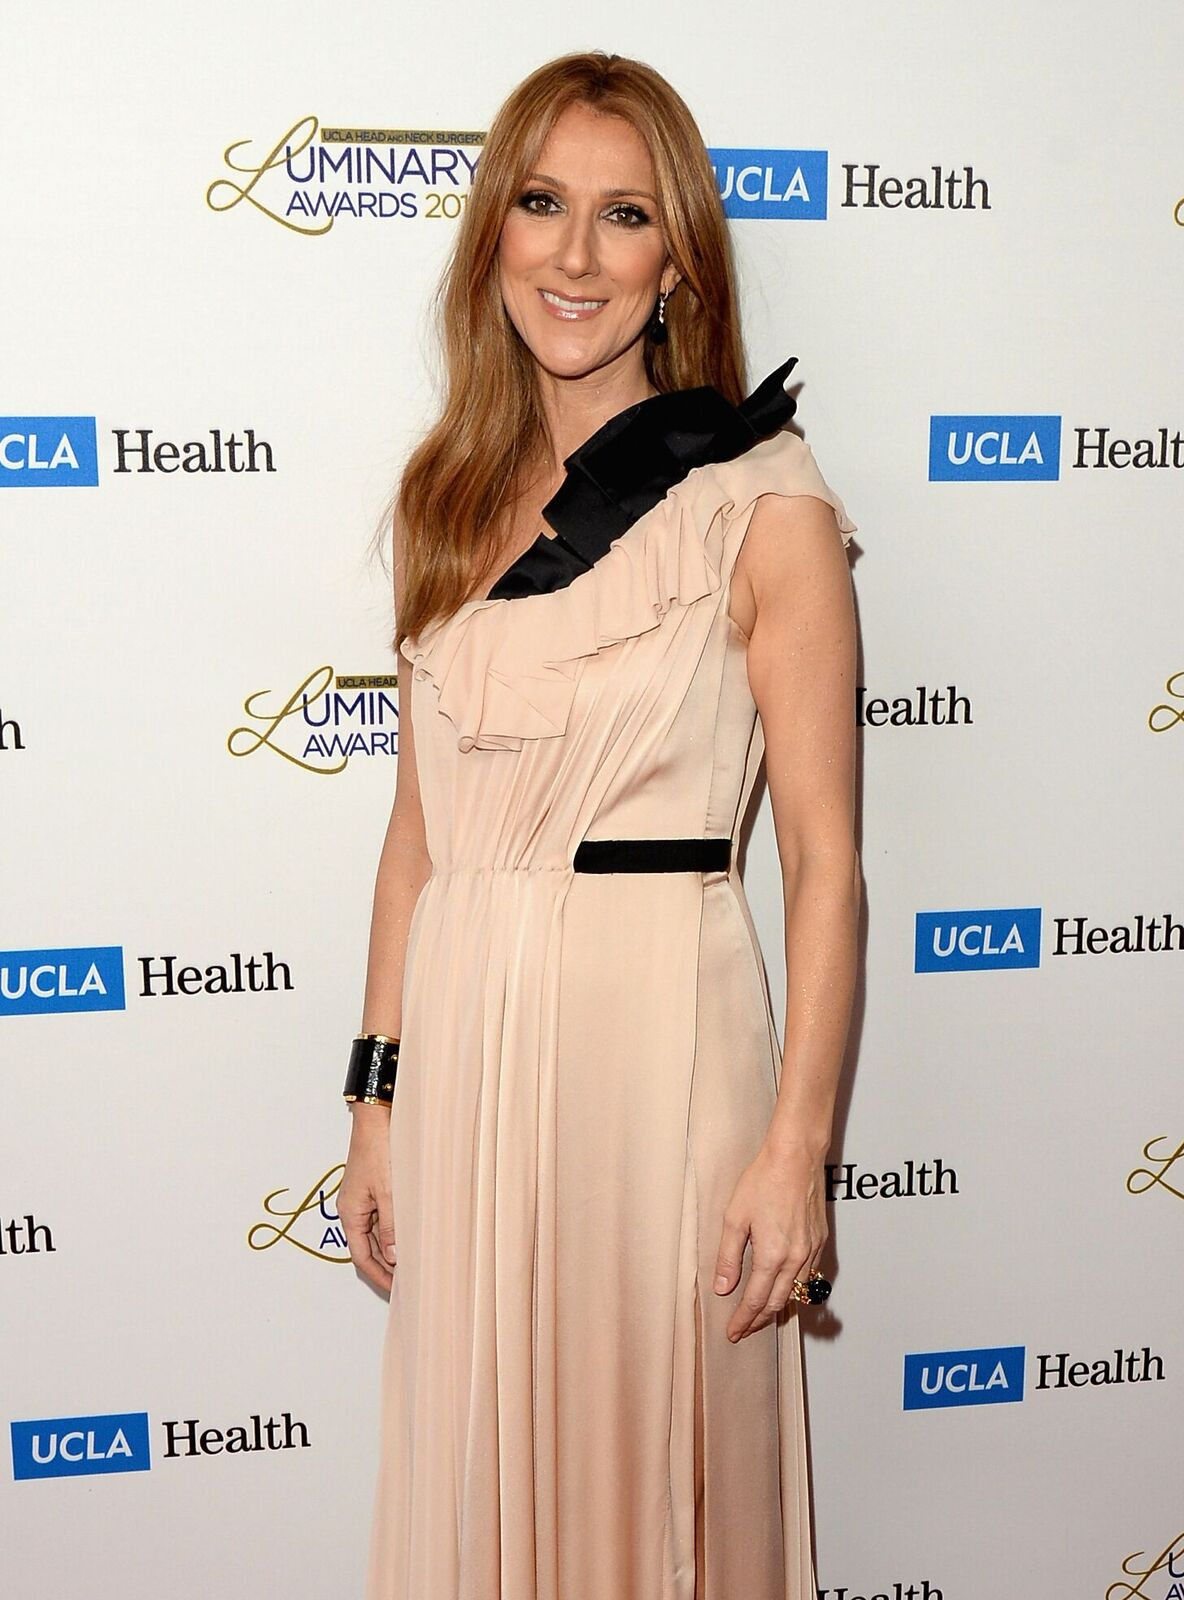 Musician Celine Dion attends the UCLA Head and Neck Surgery Luminary Awards at the Beverly Wilshire Four Seasons Hotel on January 22, 2014 in Beverly Hills, California | Photo: Getty Images